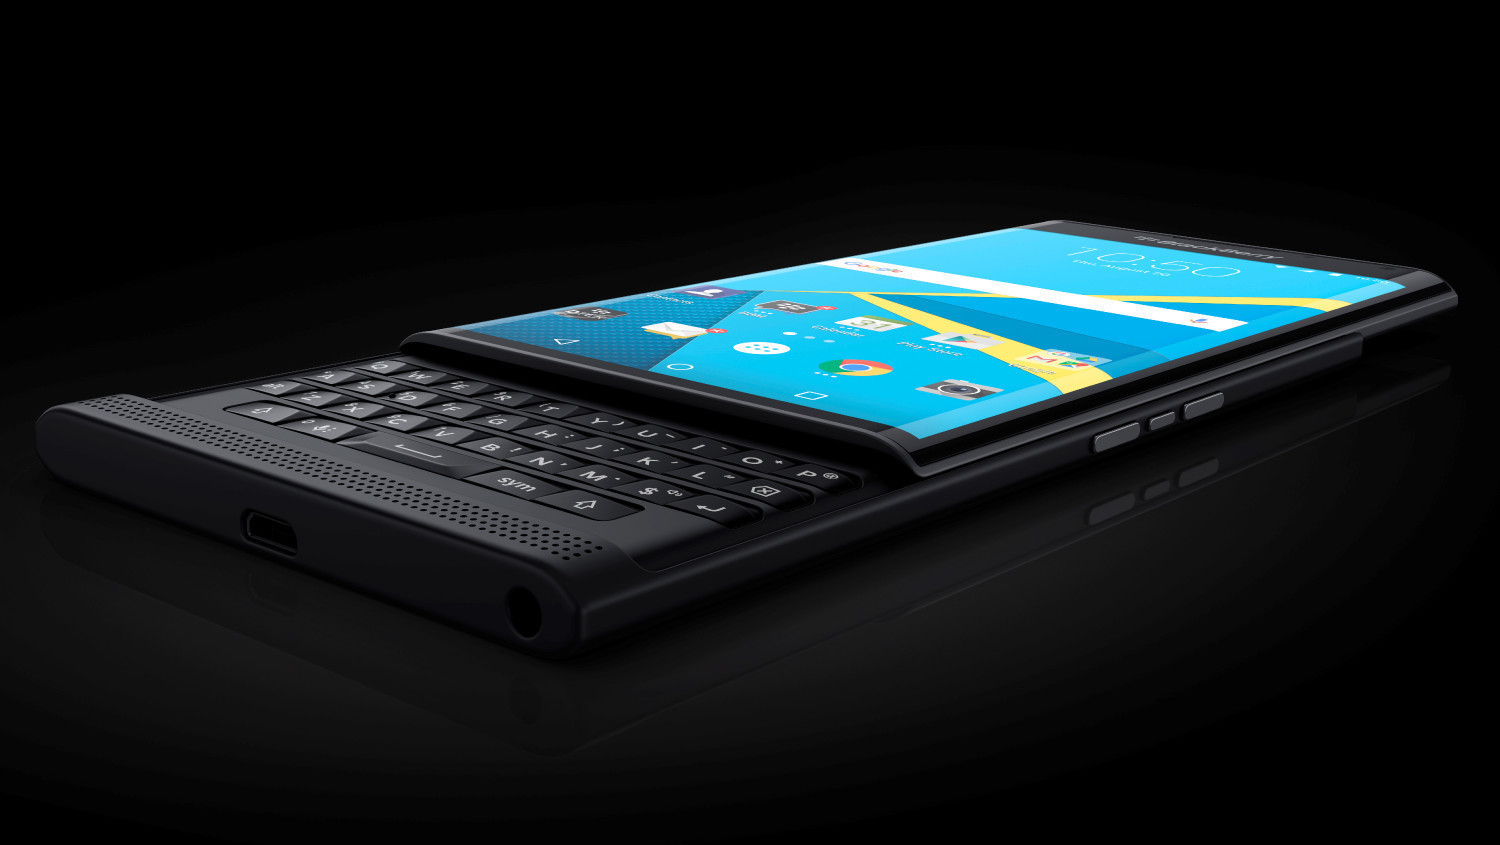 BlackBerry Priv won't get Android Oreo, DTEKs also unlikely